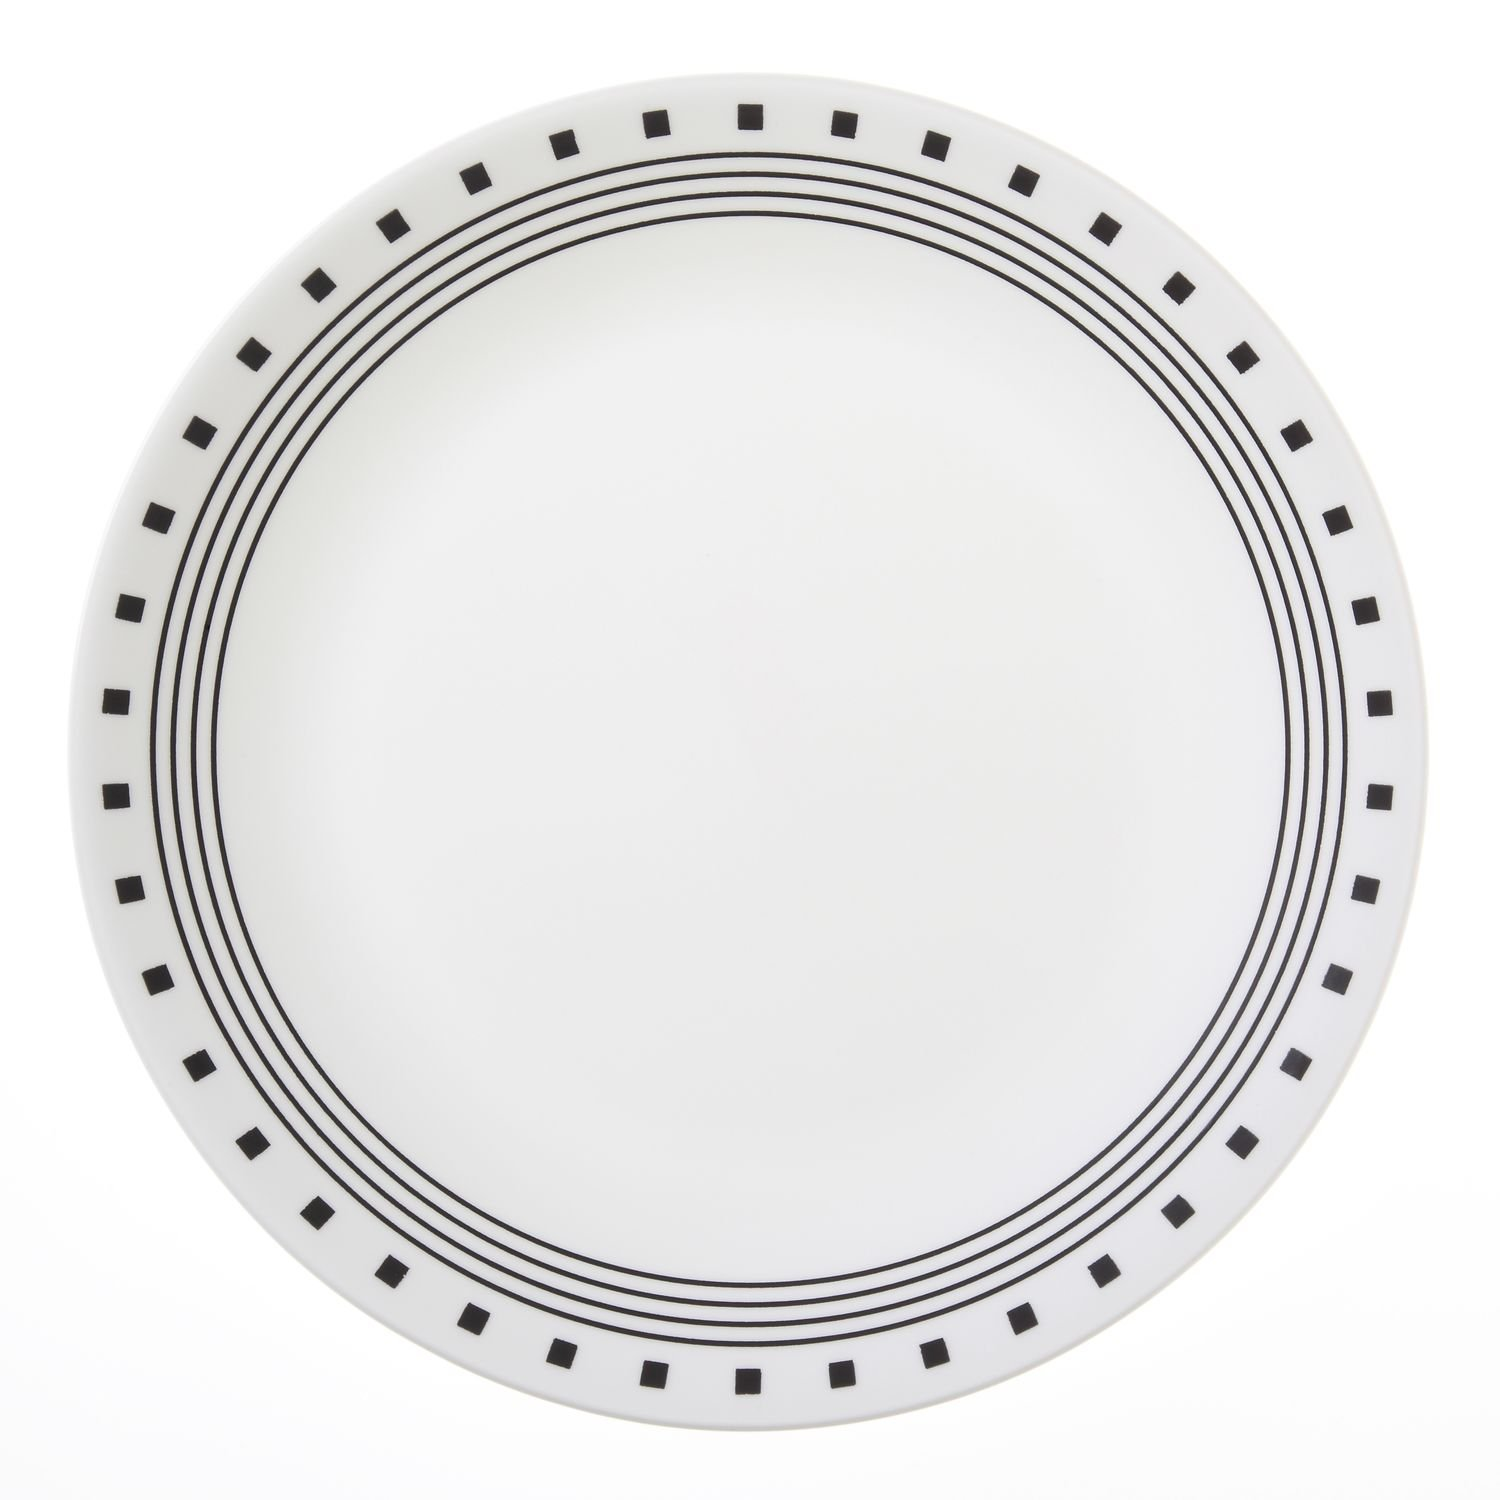 Corelle Livingware City Block 10-1/4'' Dinner Plate (Set of 8),Dotted by Corelle (Image #1)